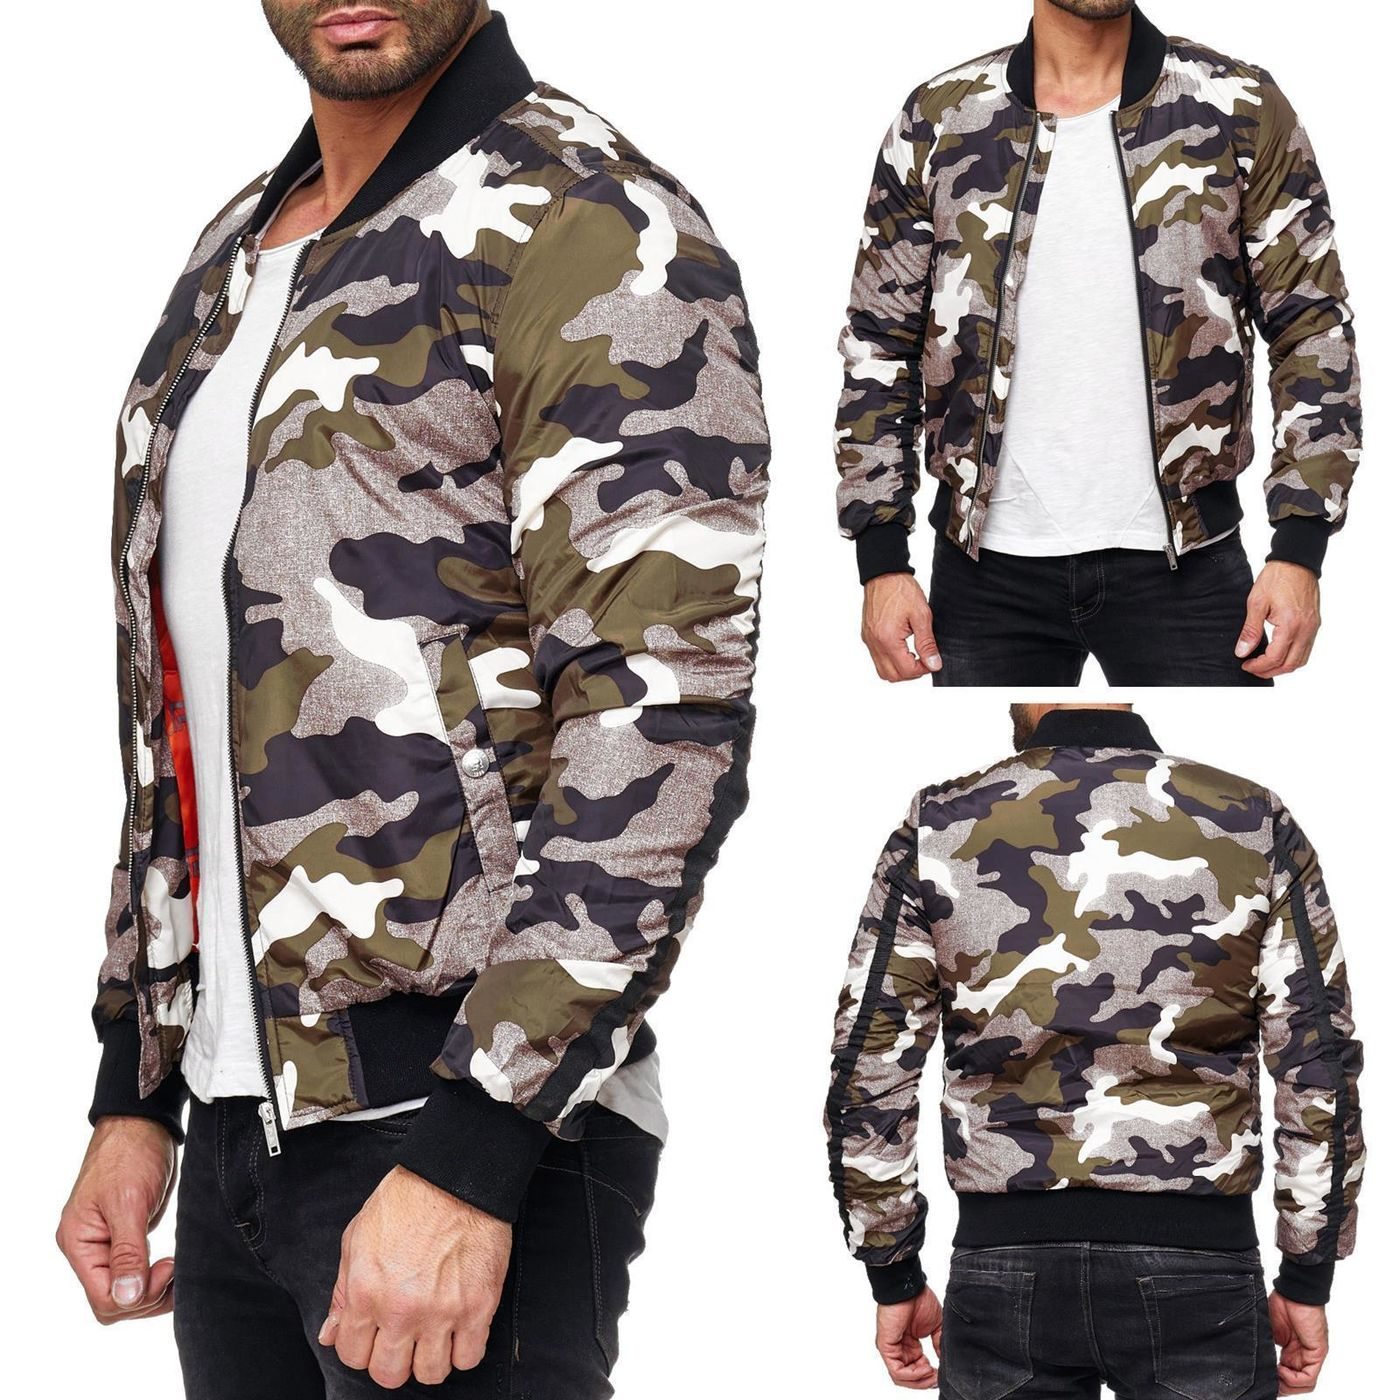 red bridge herren camouflage winter jacke m6030 camouflage. Black Bedroom Furniture Sets. Home Design Ideas